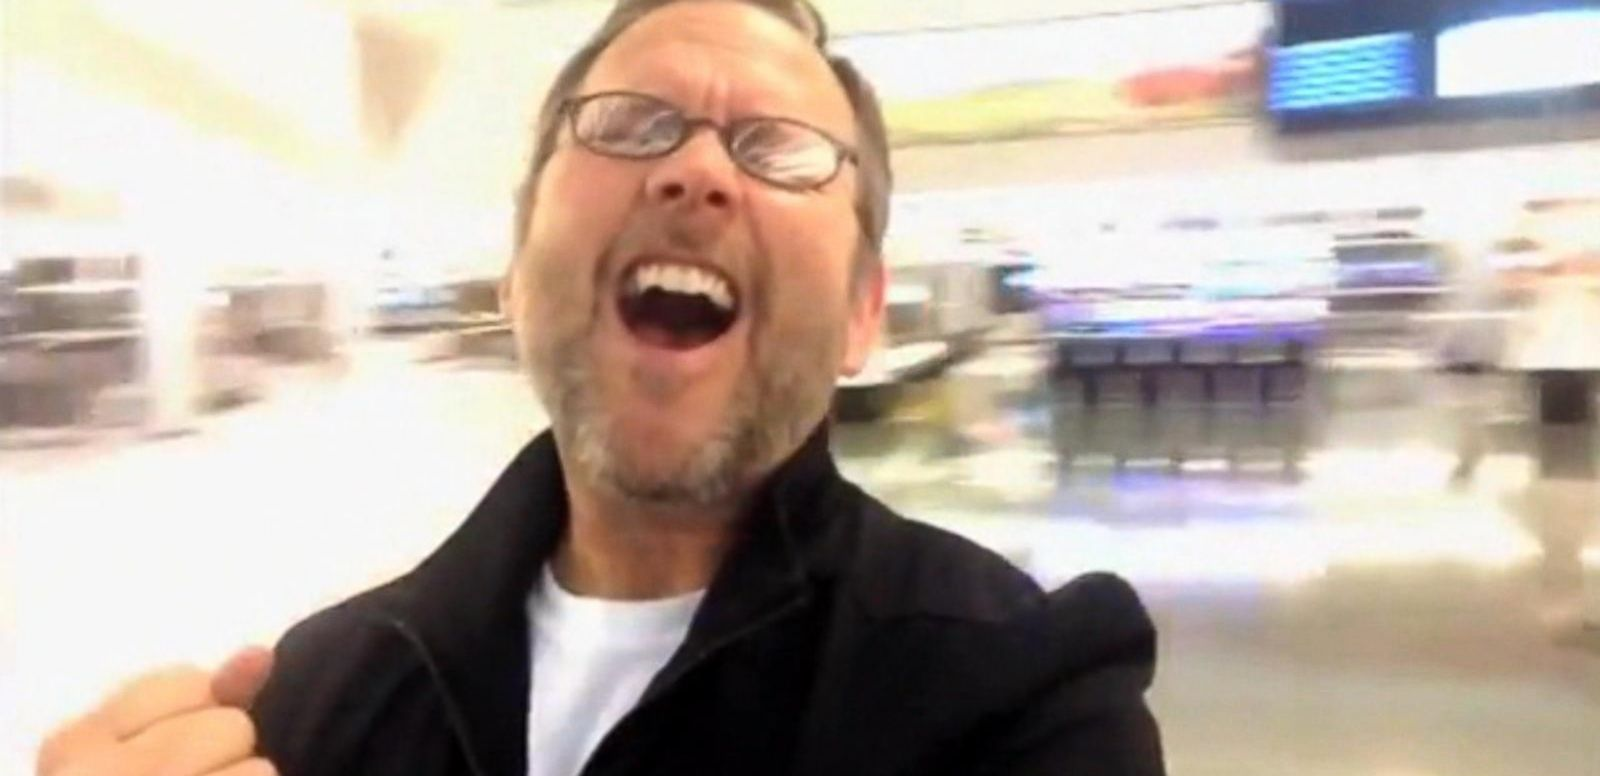 VIDEO: Epic Viral Video Countdown: Airport Lip-Sync Viral Sensation